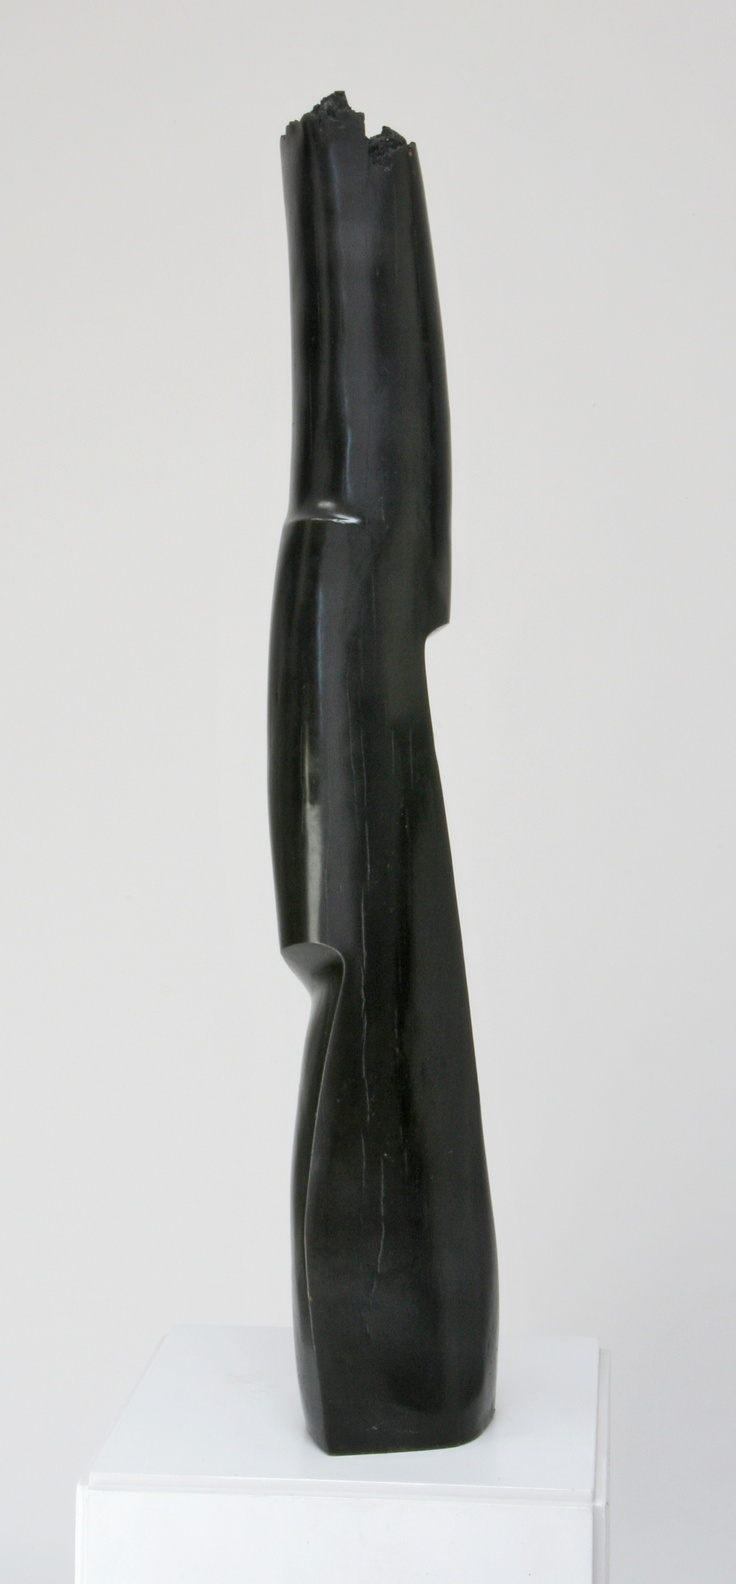 Olduvai, 1998, cast bronze, 15kg, edition of 6, w 190mm x h 1,060mm x d 160mm (photo: Helena Fierlinger)